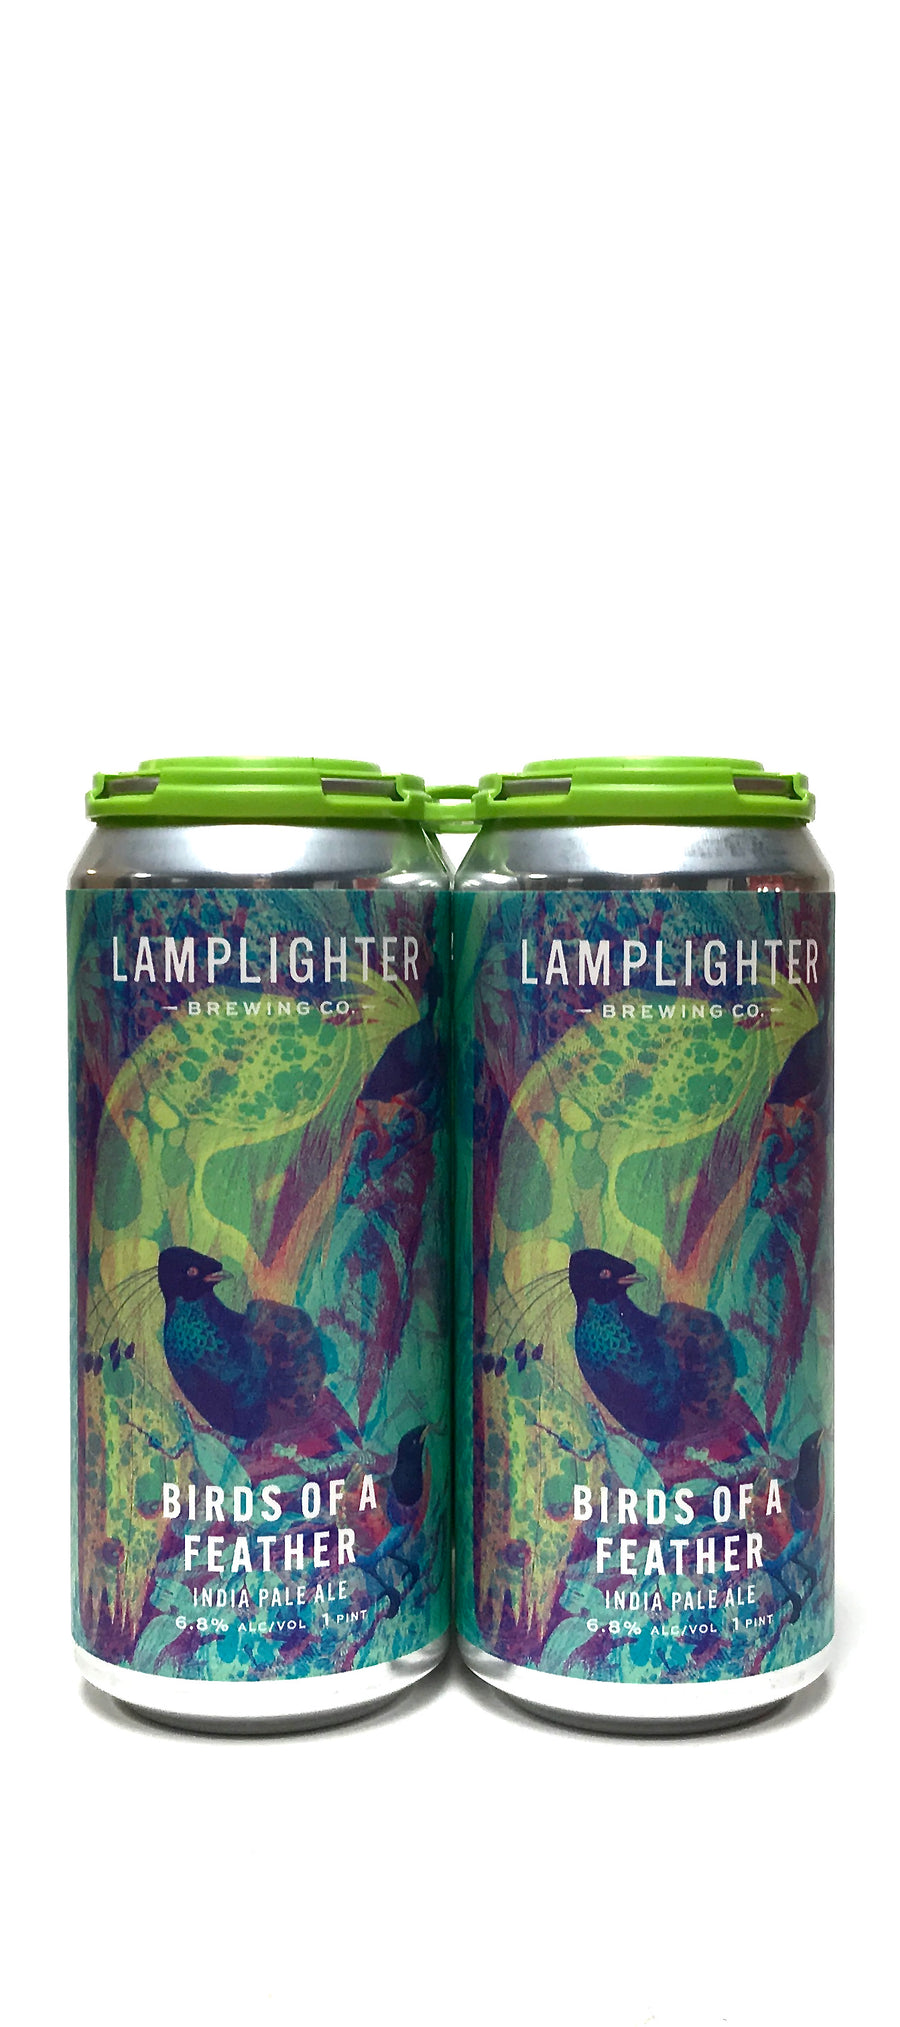 Lamplighter Birds of a Feather IPA 16oz Can 4-Pack